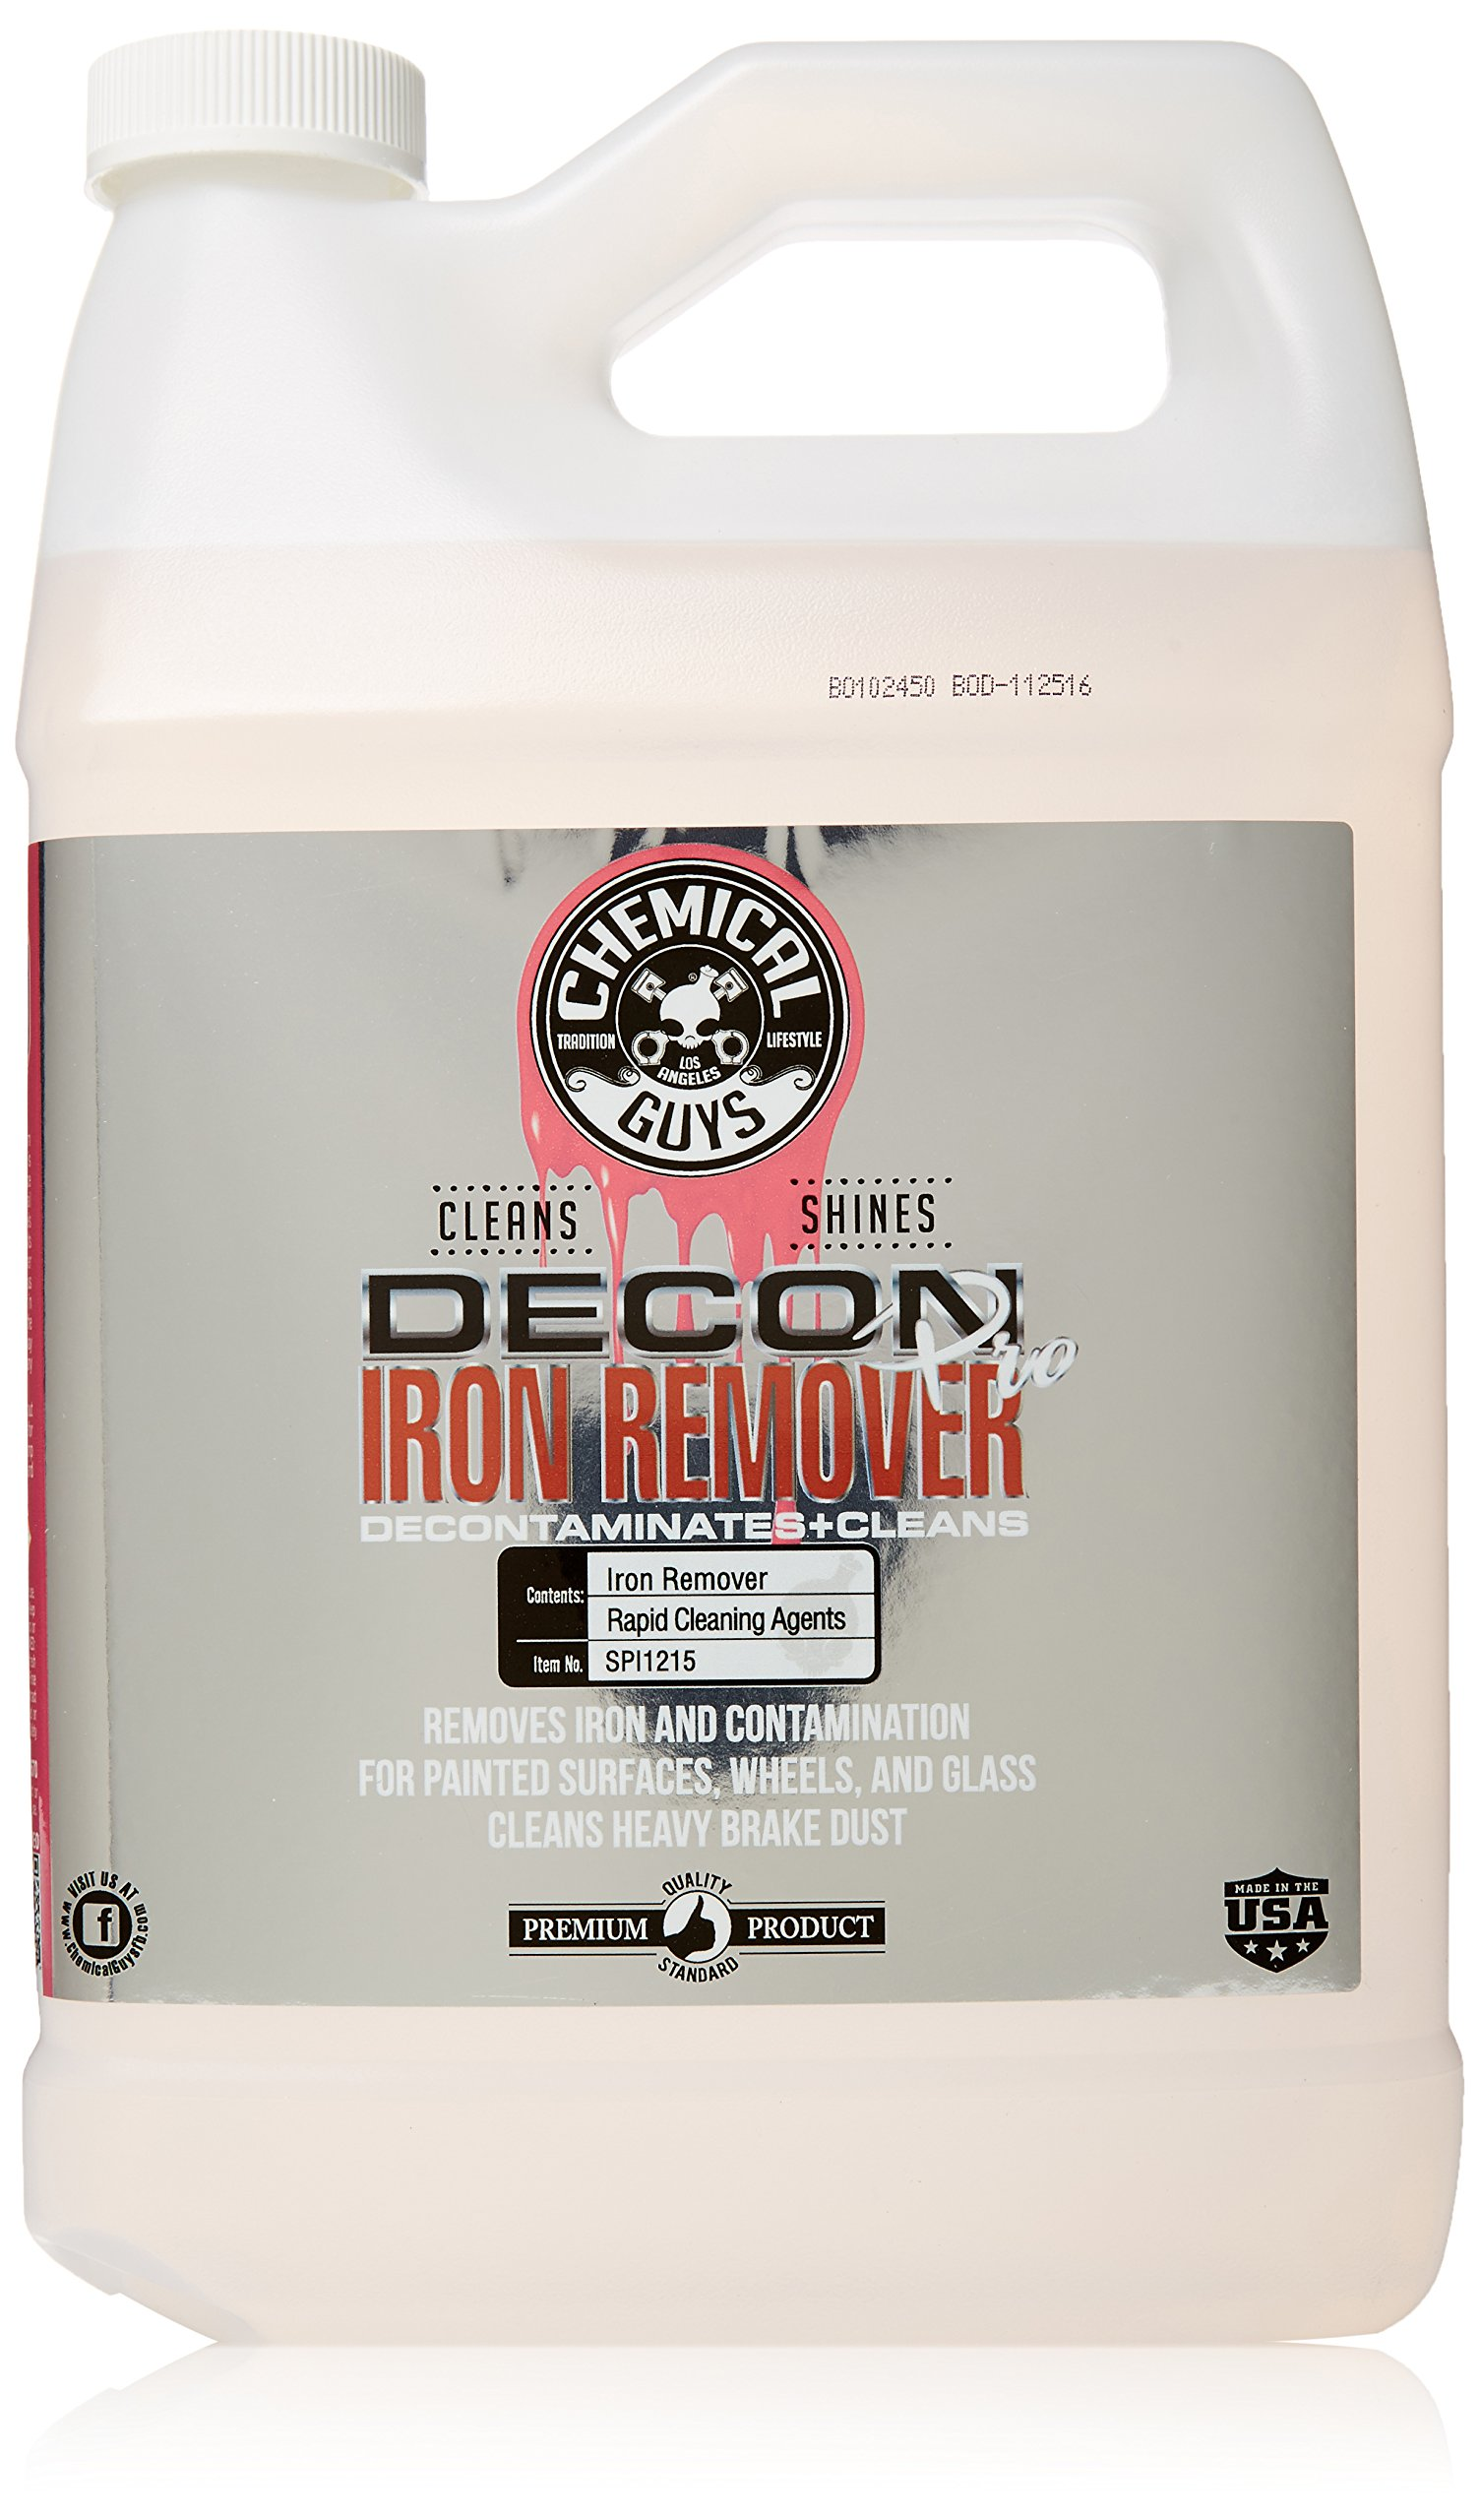 Chemical Guys SPI215 Decon Pro Decontaminant and Iron Remover (1 Gal), 128. Fluid_Ounces